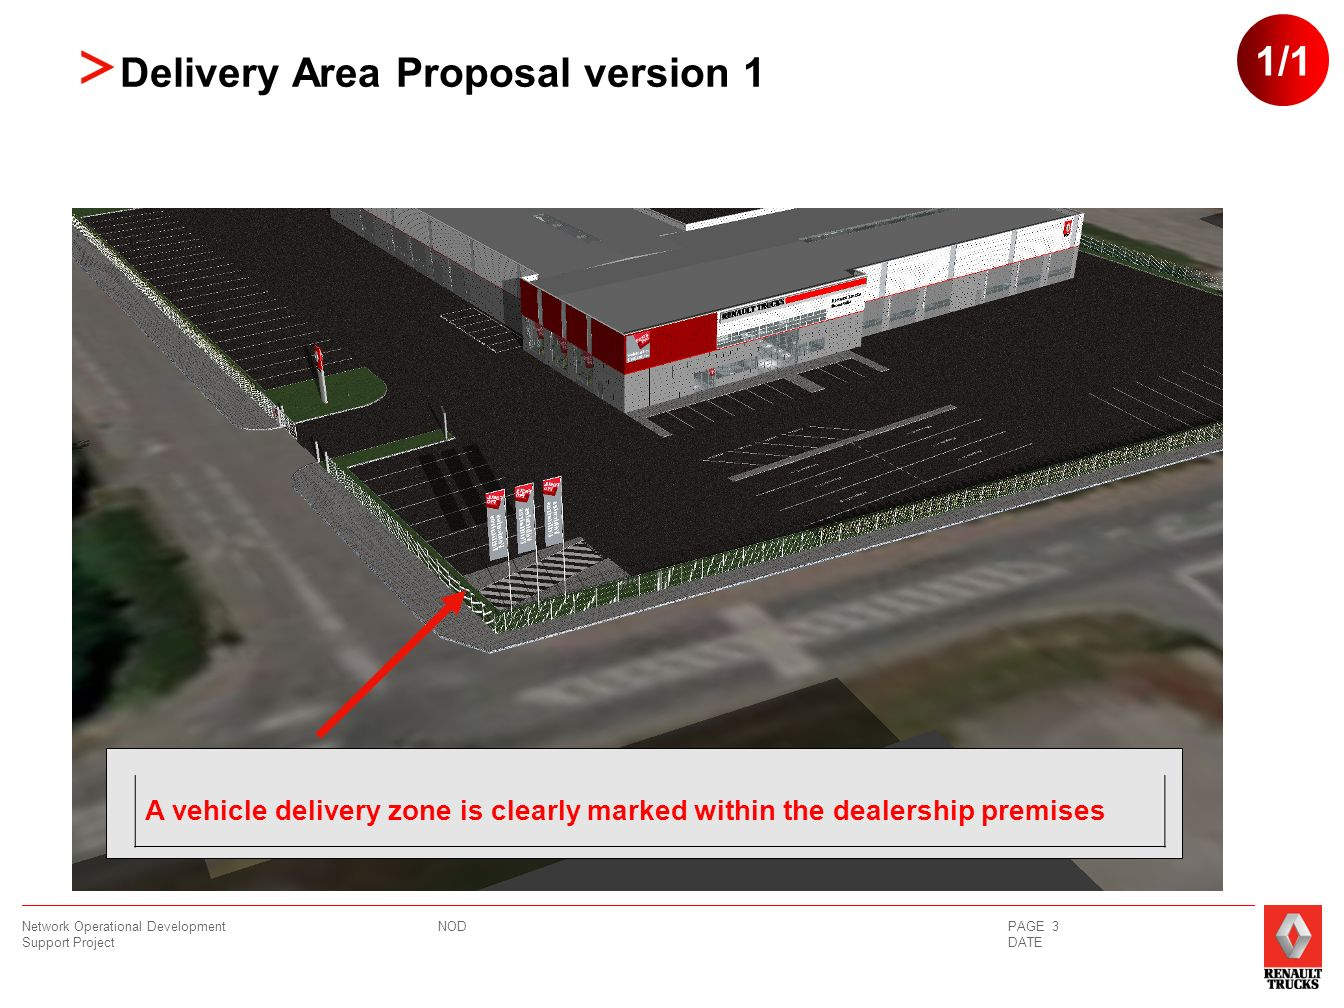 NOD Network Operational Development Support Project PAGE 3 DATE Delivery Area Proposal version 1 A vehicle delivery zone is clearly marked within the